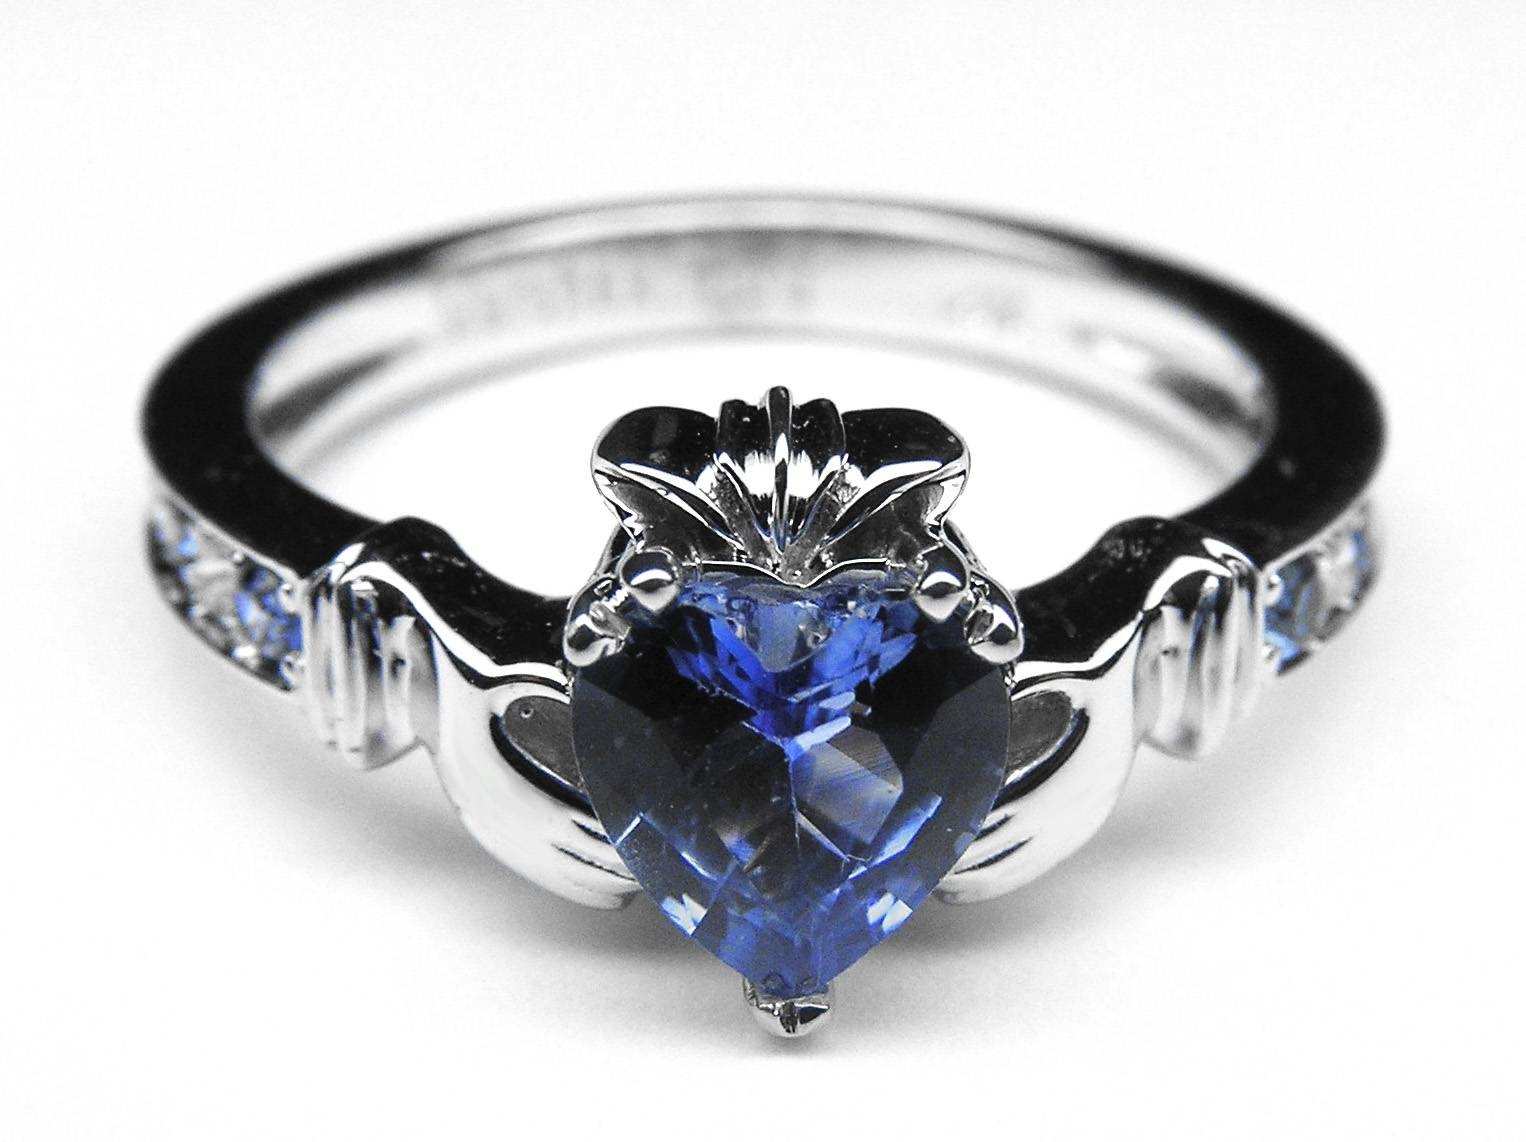 Claddagh – European Engagement Rings From Mdc Diamonds Nyc Within Claddagh Engagement Rings (View 6 of 15)